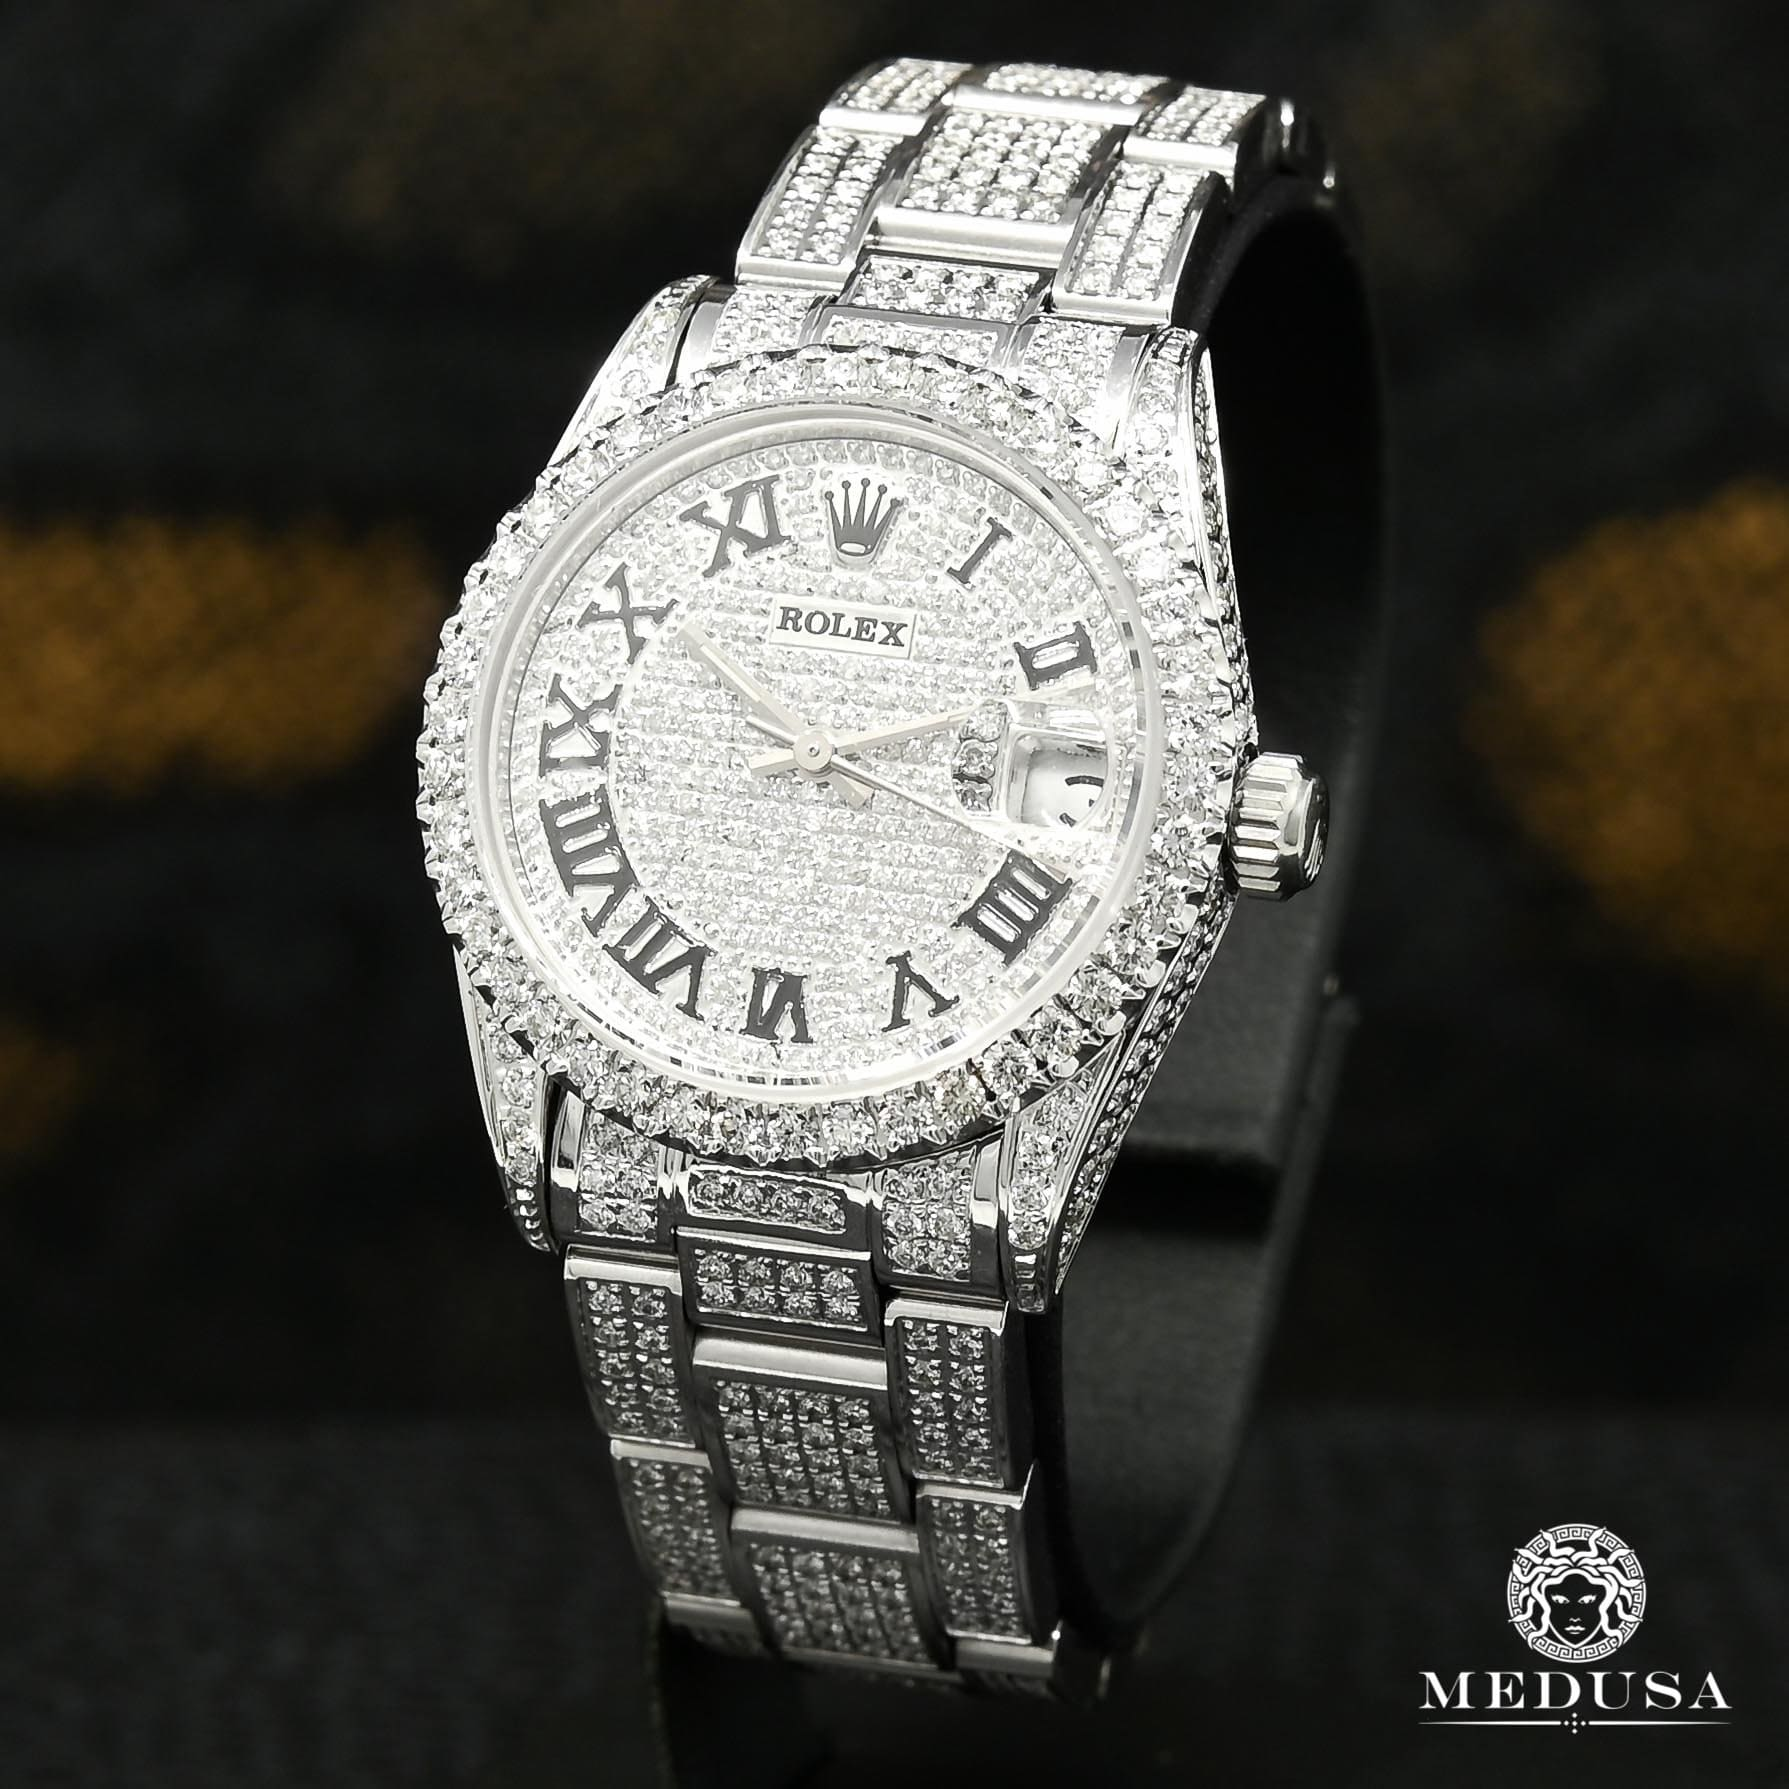 Montre Rolex | Montre Femme Rolex Oyster Perpetual Date 31mm - Full Iced Out Stainless